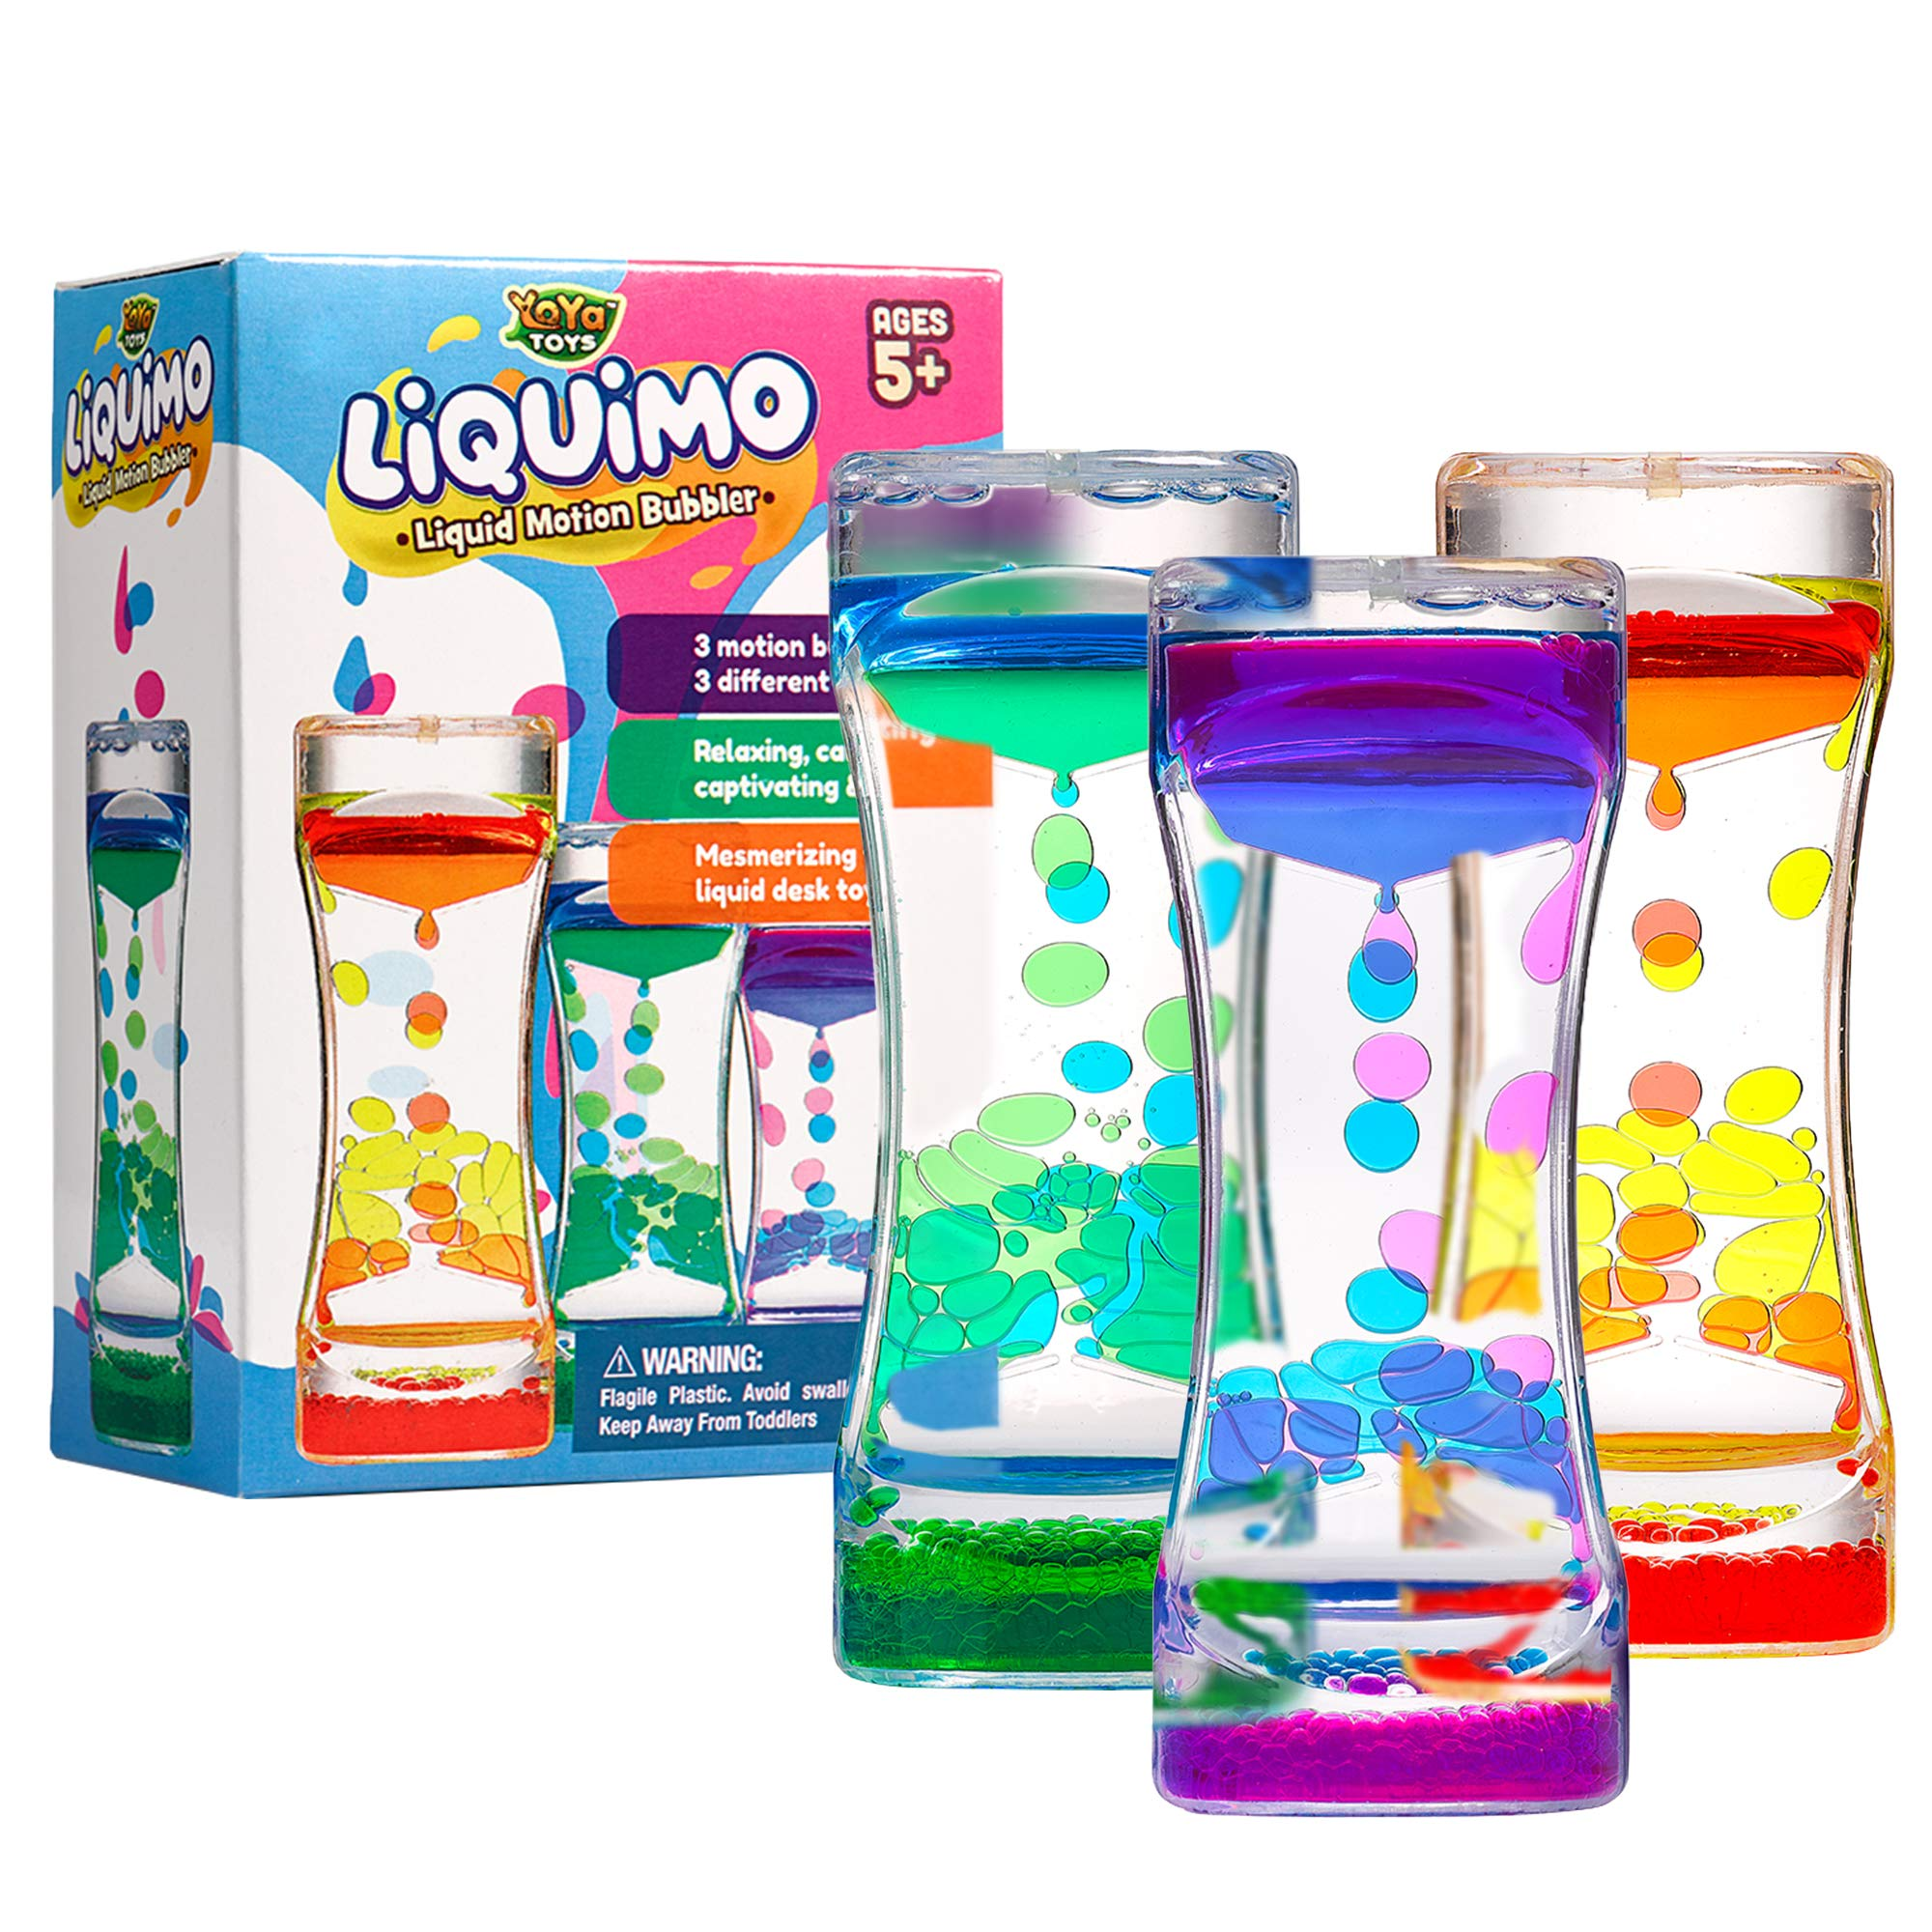 YoYa Toys Liquimo - Liquid Motion Bubbler for Kids and Adults - 3-Pack - Hourglass Liquid Bubbler/Timer for Sensory Play, Fidget Toy and Stress Management - Cool Desk Décor by YoYa Toys